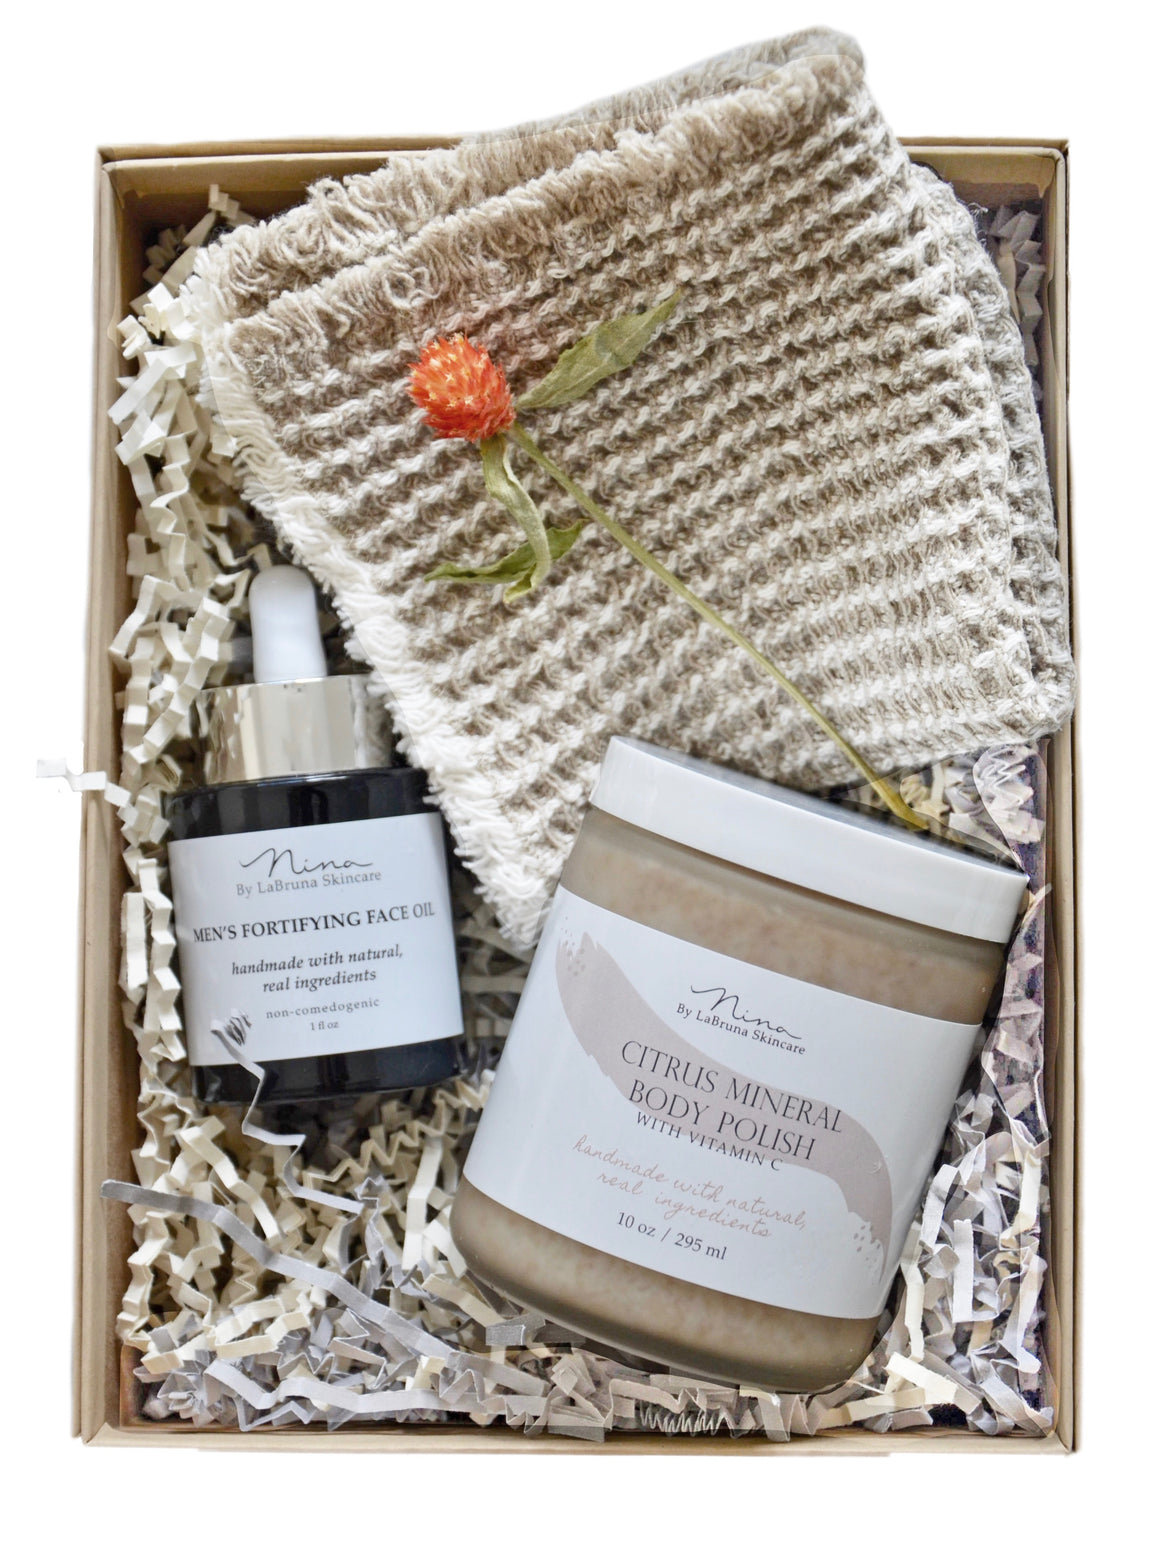 pamper me gift kit inside